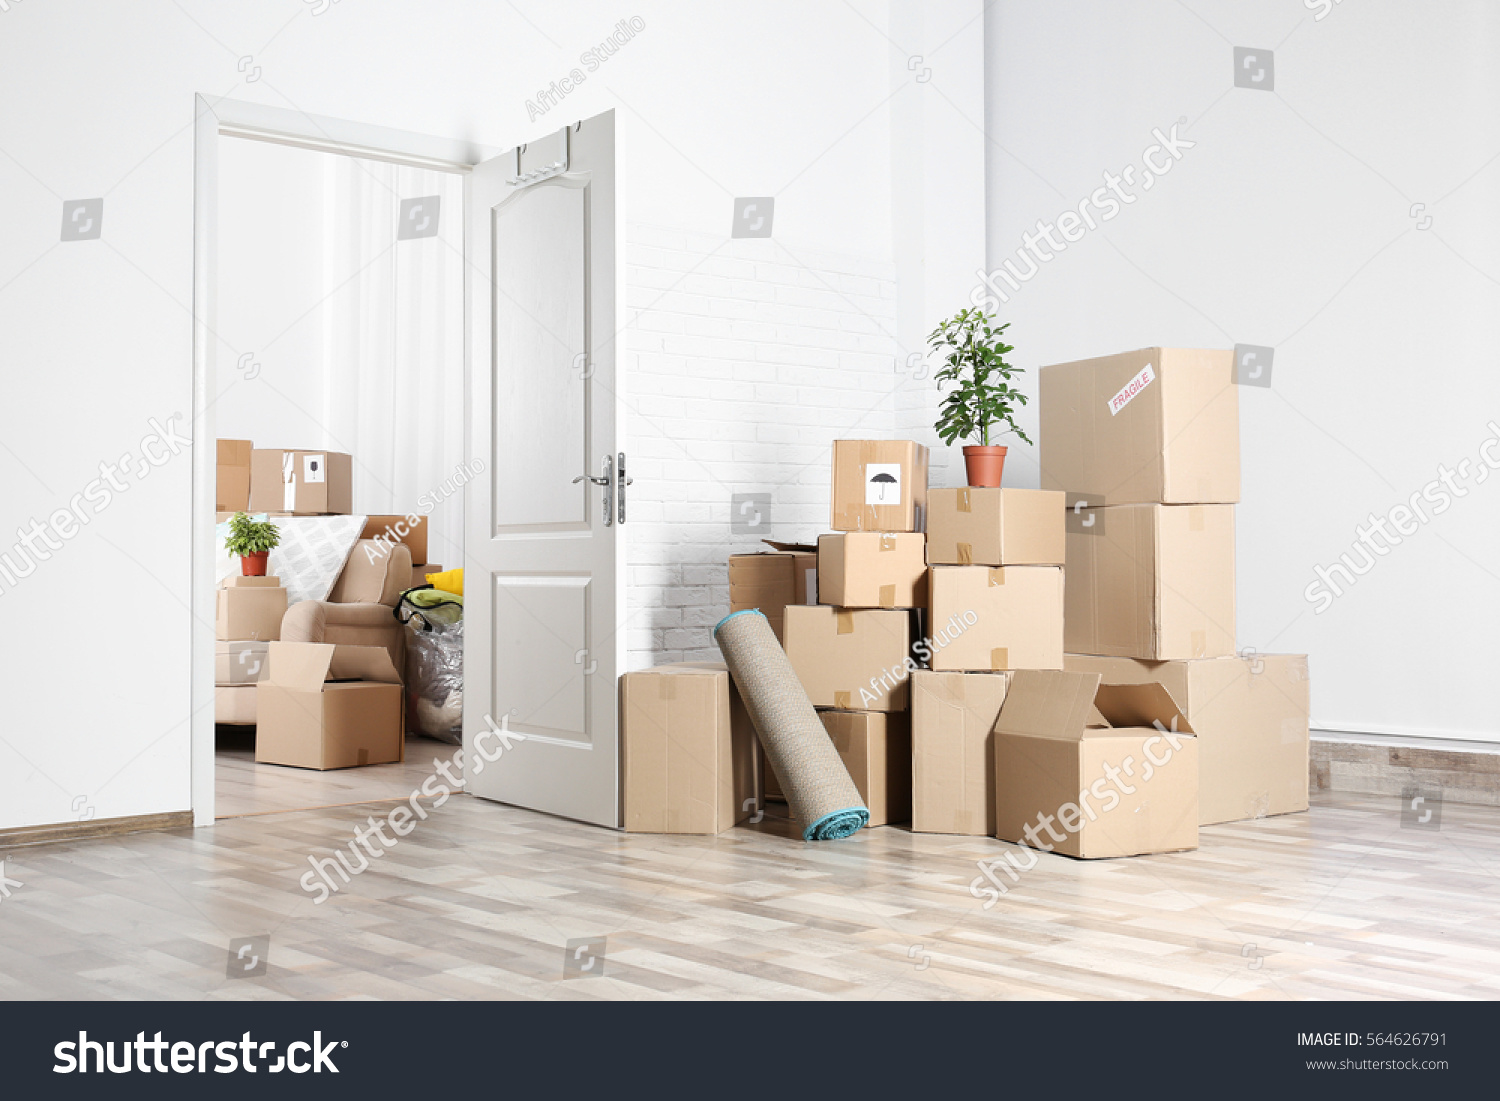 Packed Household Stuff Moving Into New Stock Photo 564626791 ...